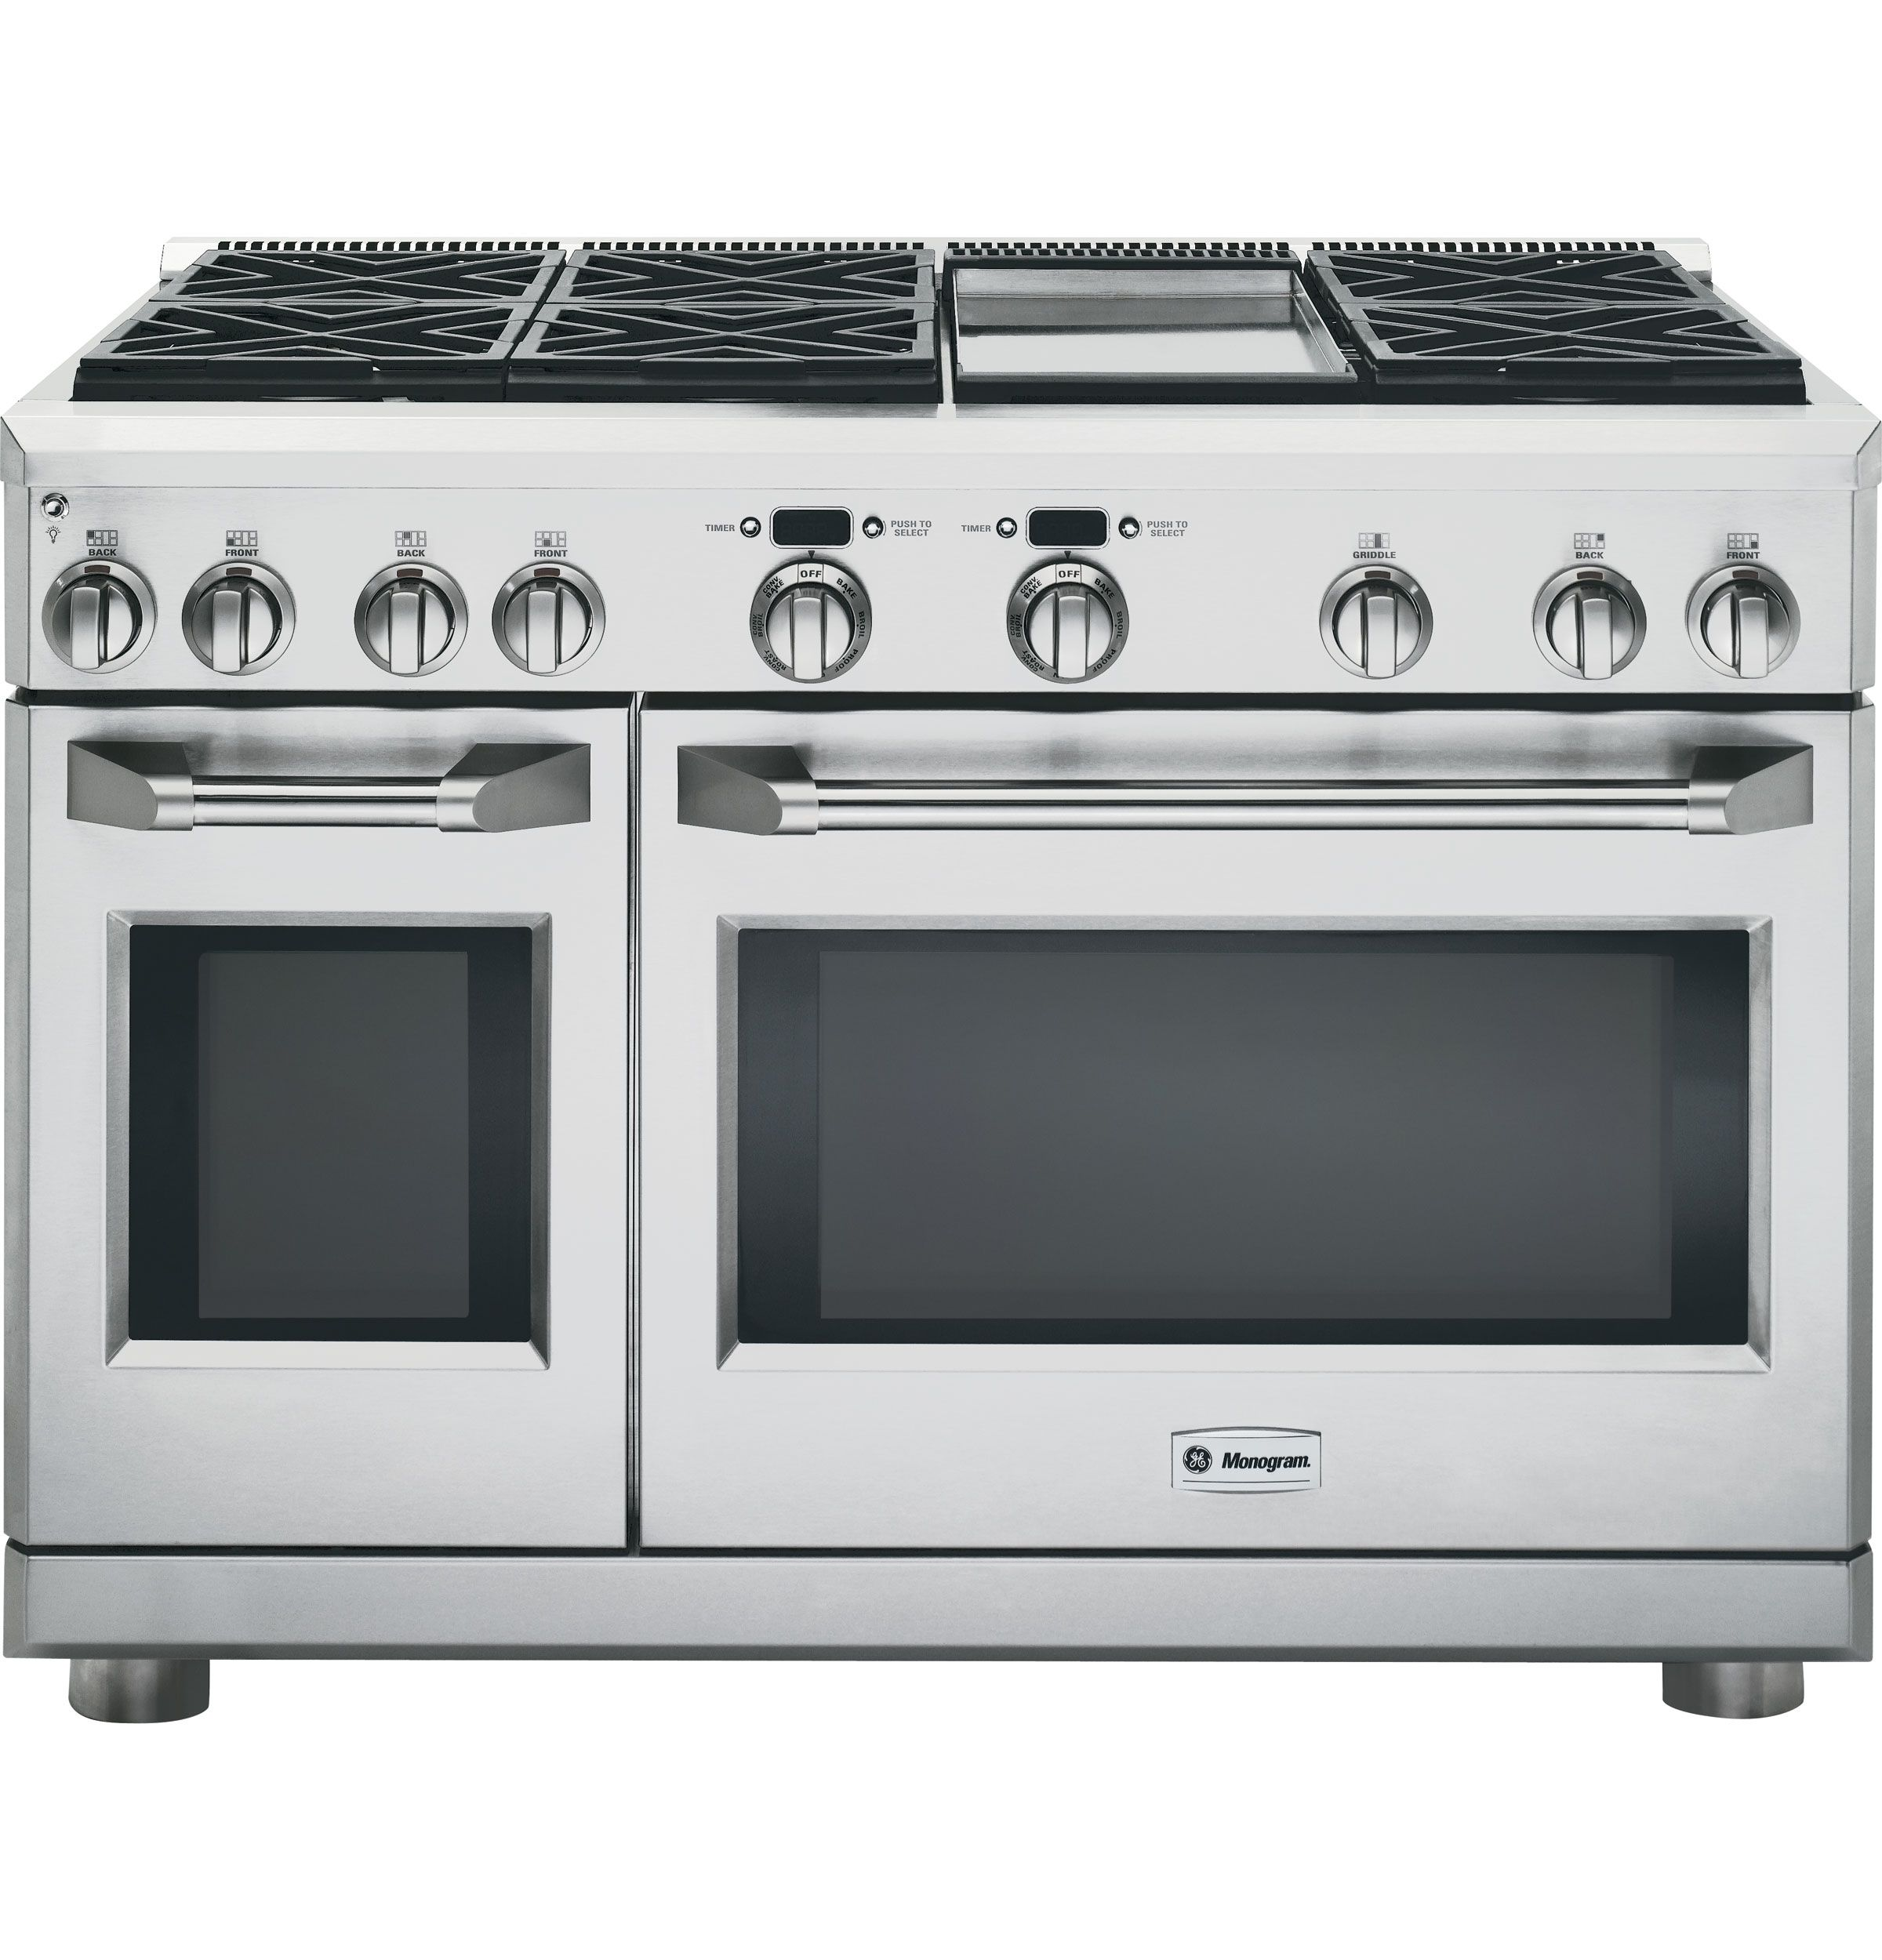 Contemporary range from wolf model 4 burners griddle - 48 Stainless Steel Dual Fuel Gas Sealed Burner Double Oven Range Convection